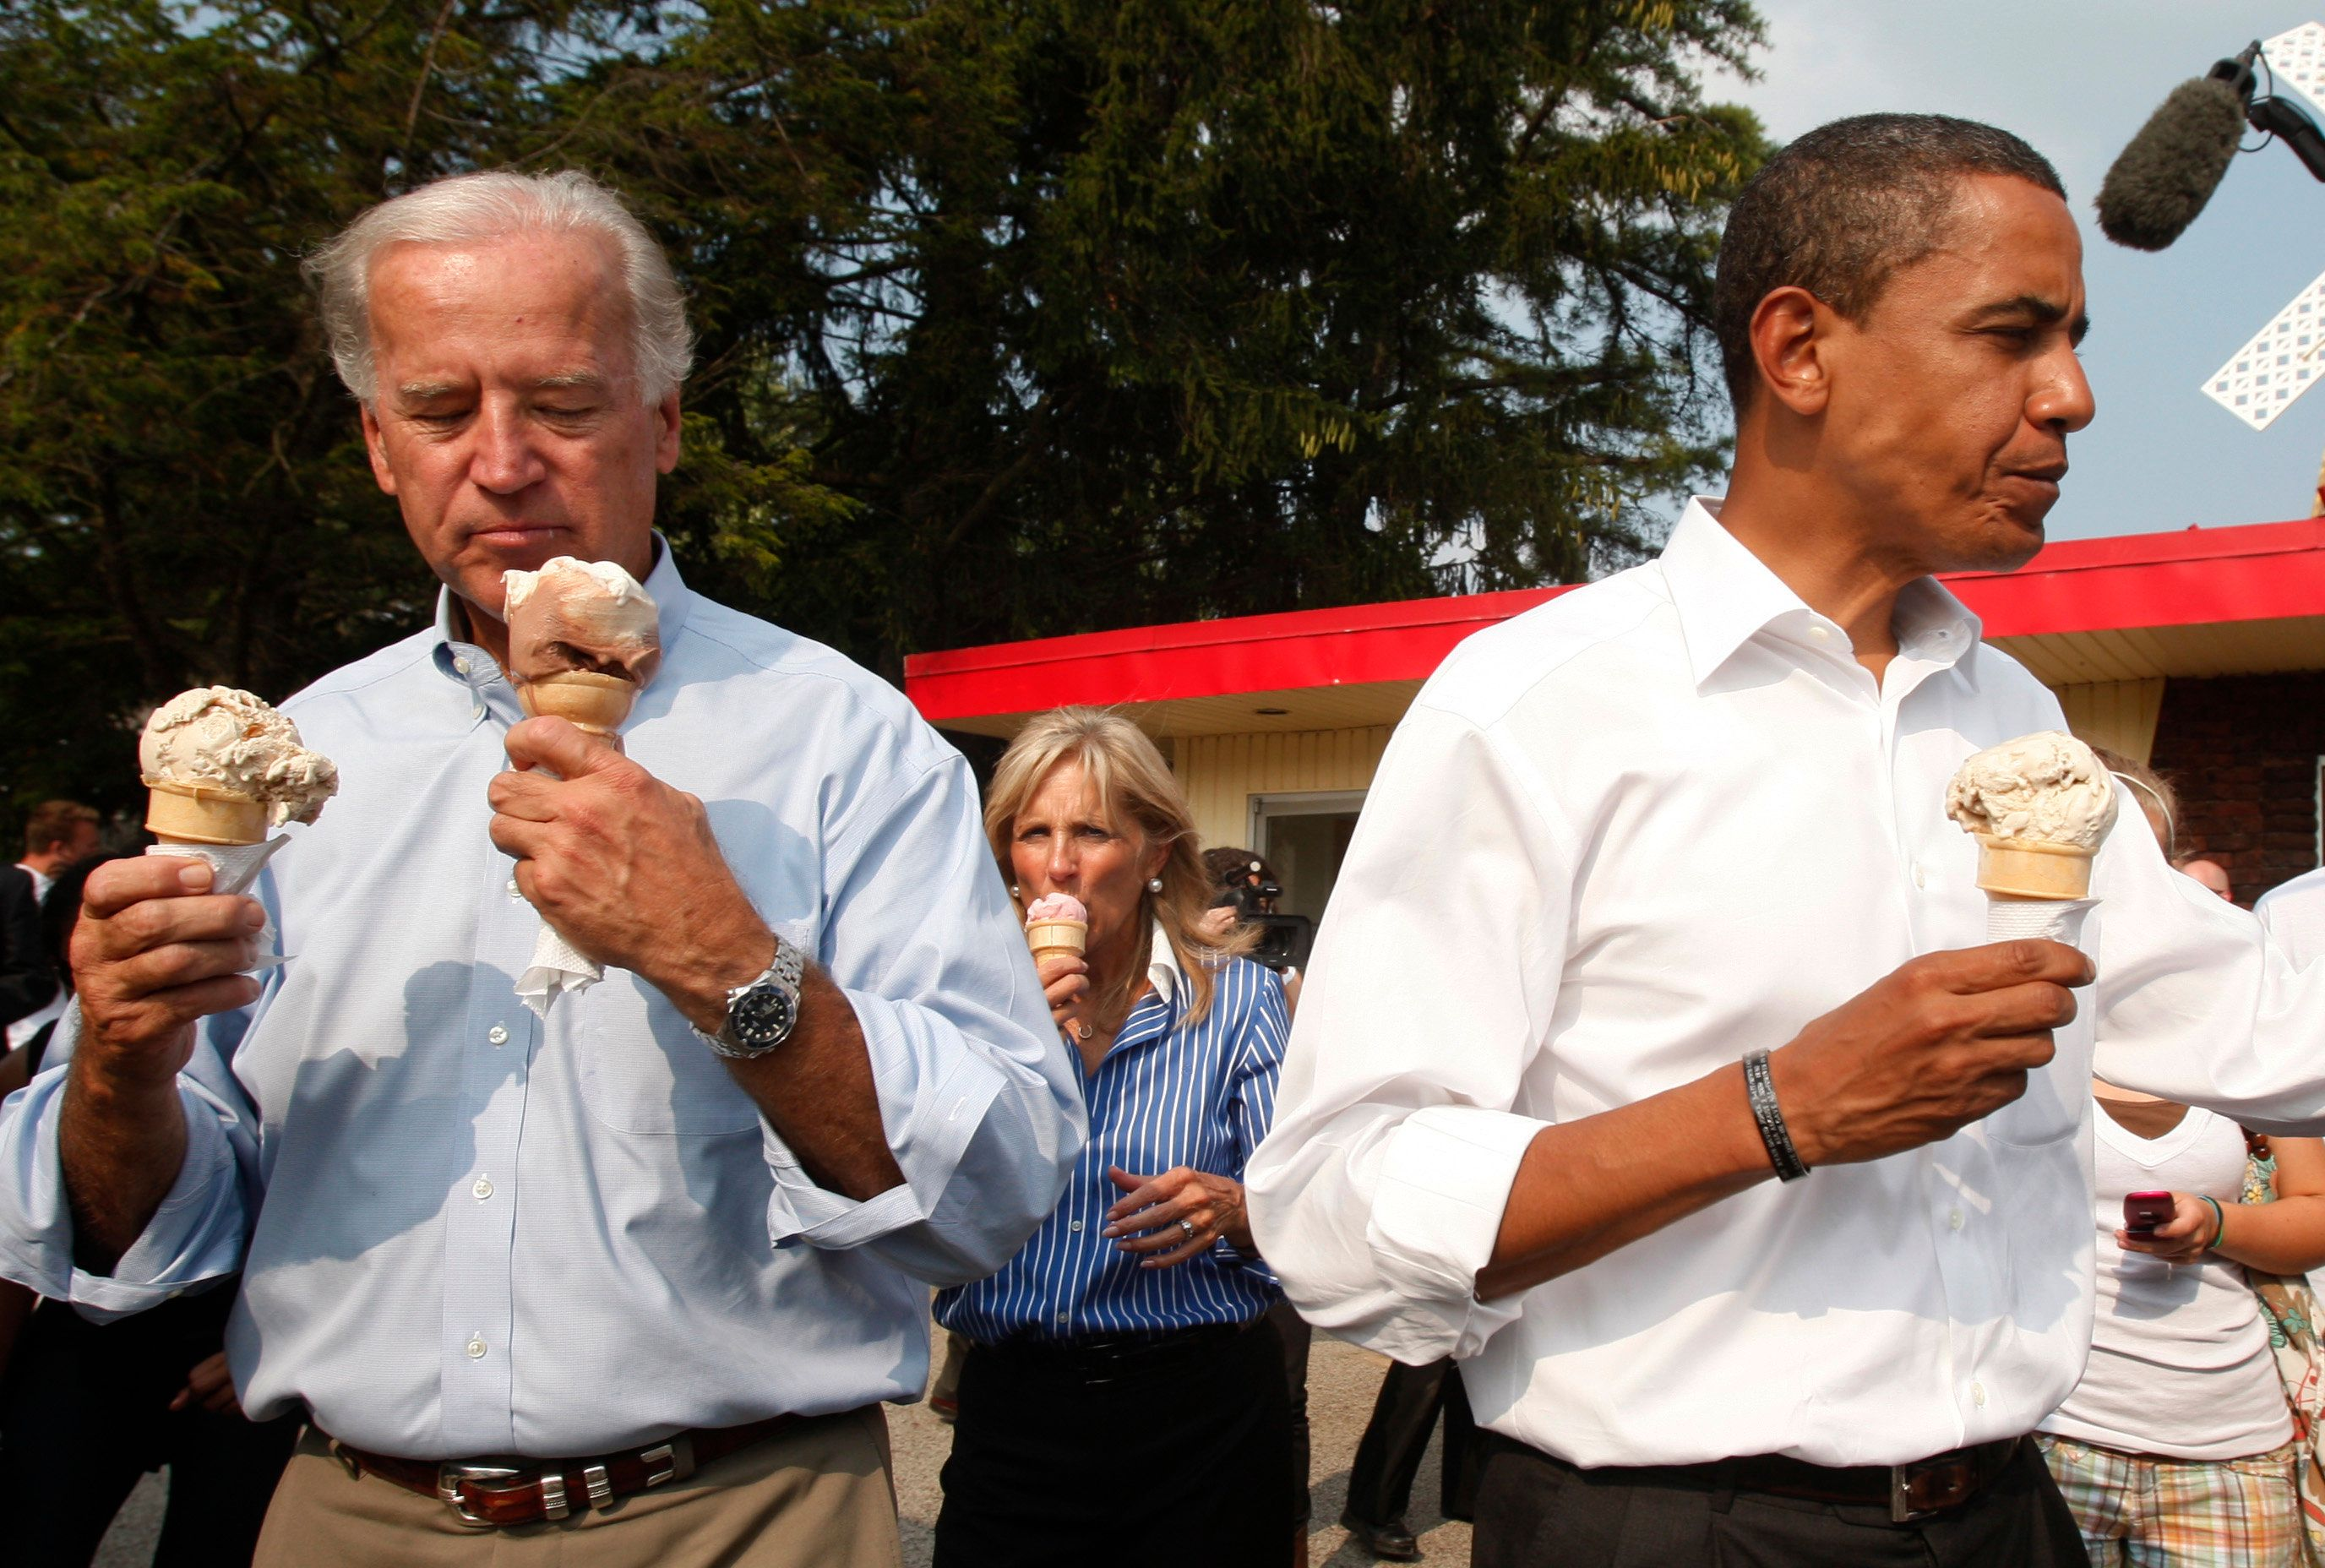 US Democratic presidential nominee Senator Barack Obama (D-IL)(R) and his vice presidential running mate Senator Joe Biden (D-DE) buy ice cream during a campaign stop at Windmill Ice Cream Shop in Aliquippa, Pennsylvania, August 29, 2008. REUTERS/Jim Young  (UNITED STATES) US PRESIDENTIAL ELECTION CAMPAIGN 2008 (USA)